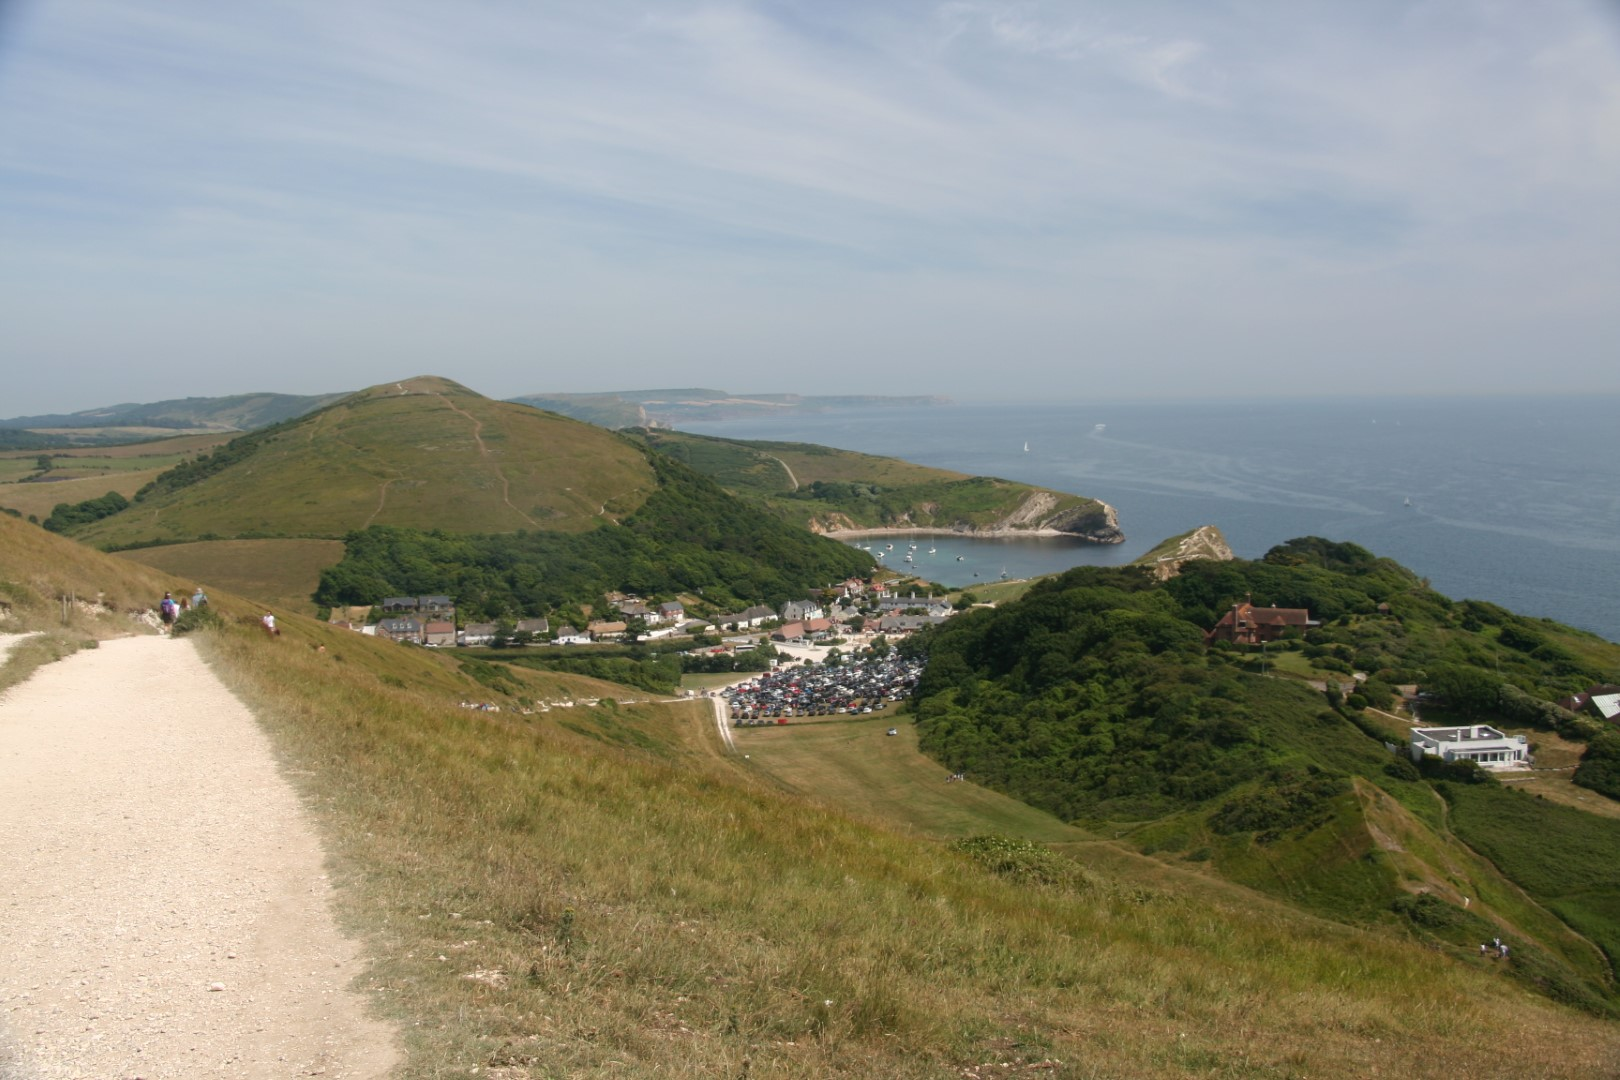 Lulworth on the way back with a view all the way to Kimmeridge.